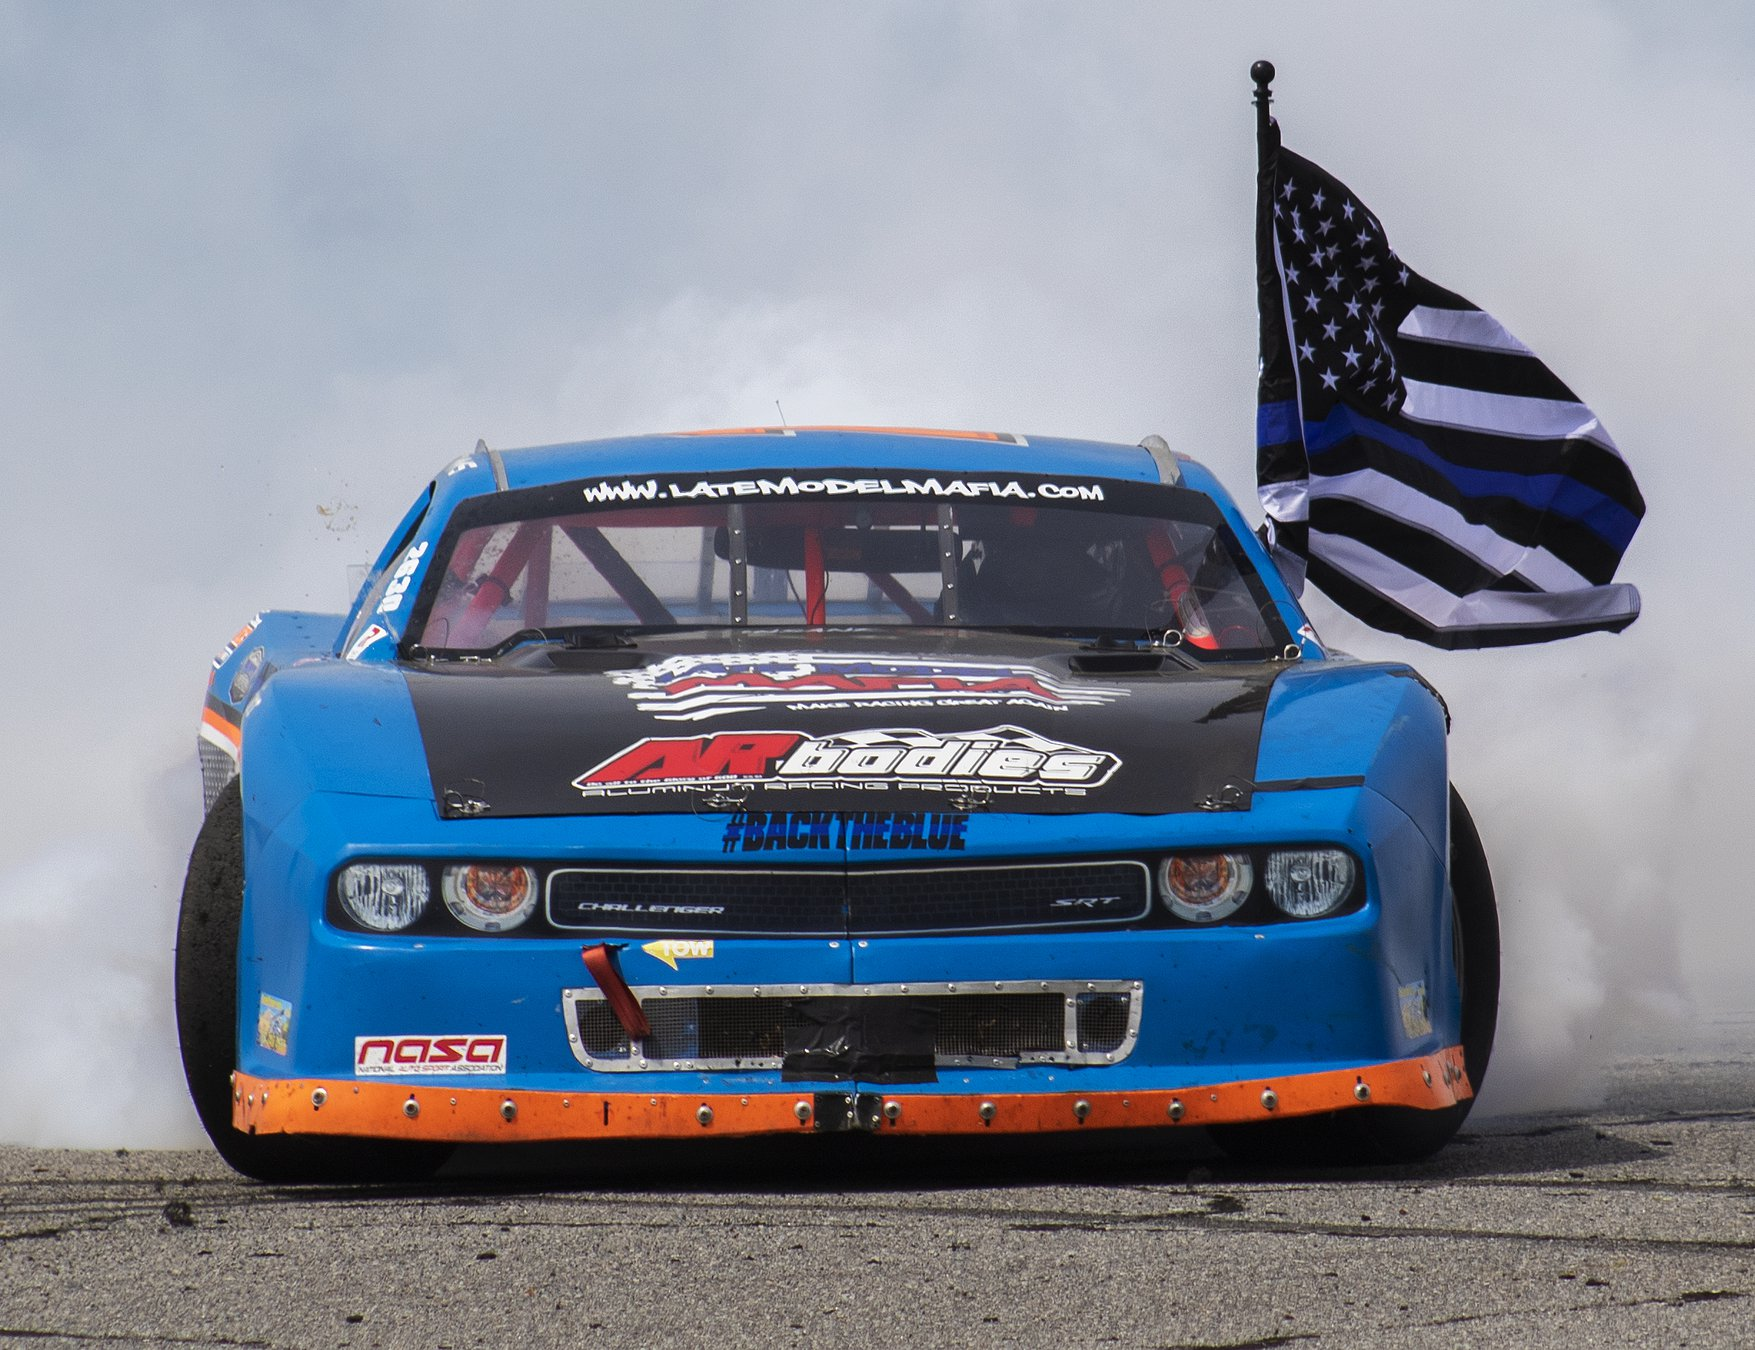 Challenger doing a burnout with a police flag